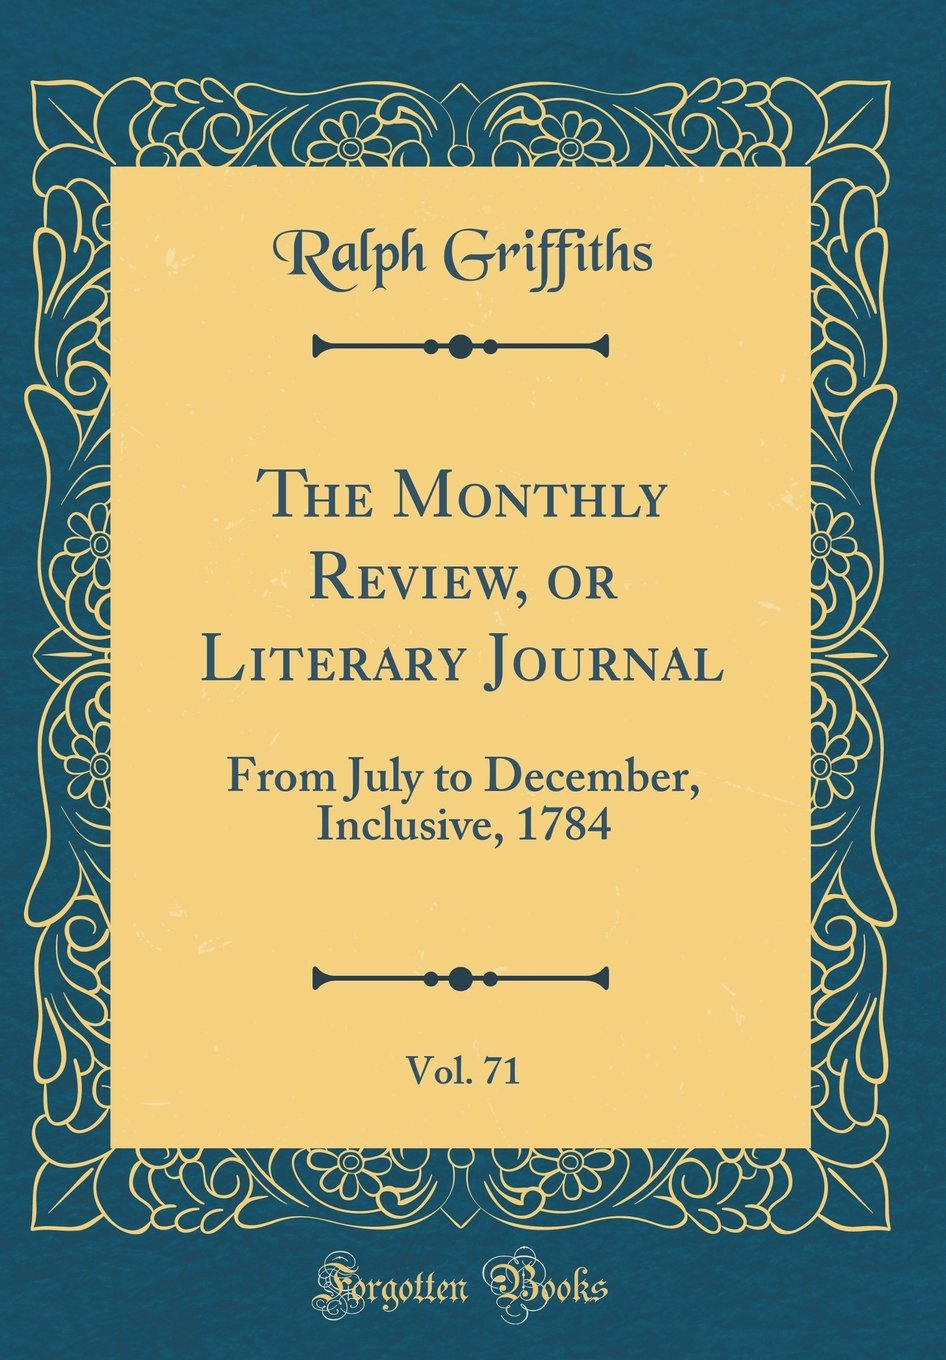 The Monthly Review, or Literary Journal, Vol. 71: From July to December, Inclusive, 1784 (Classic Reprint) pdf epub